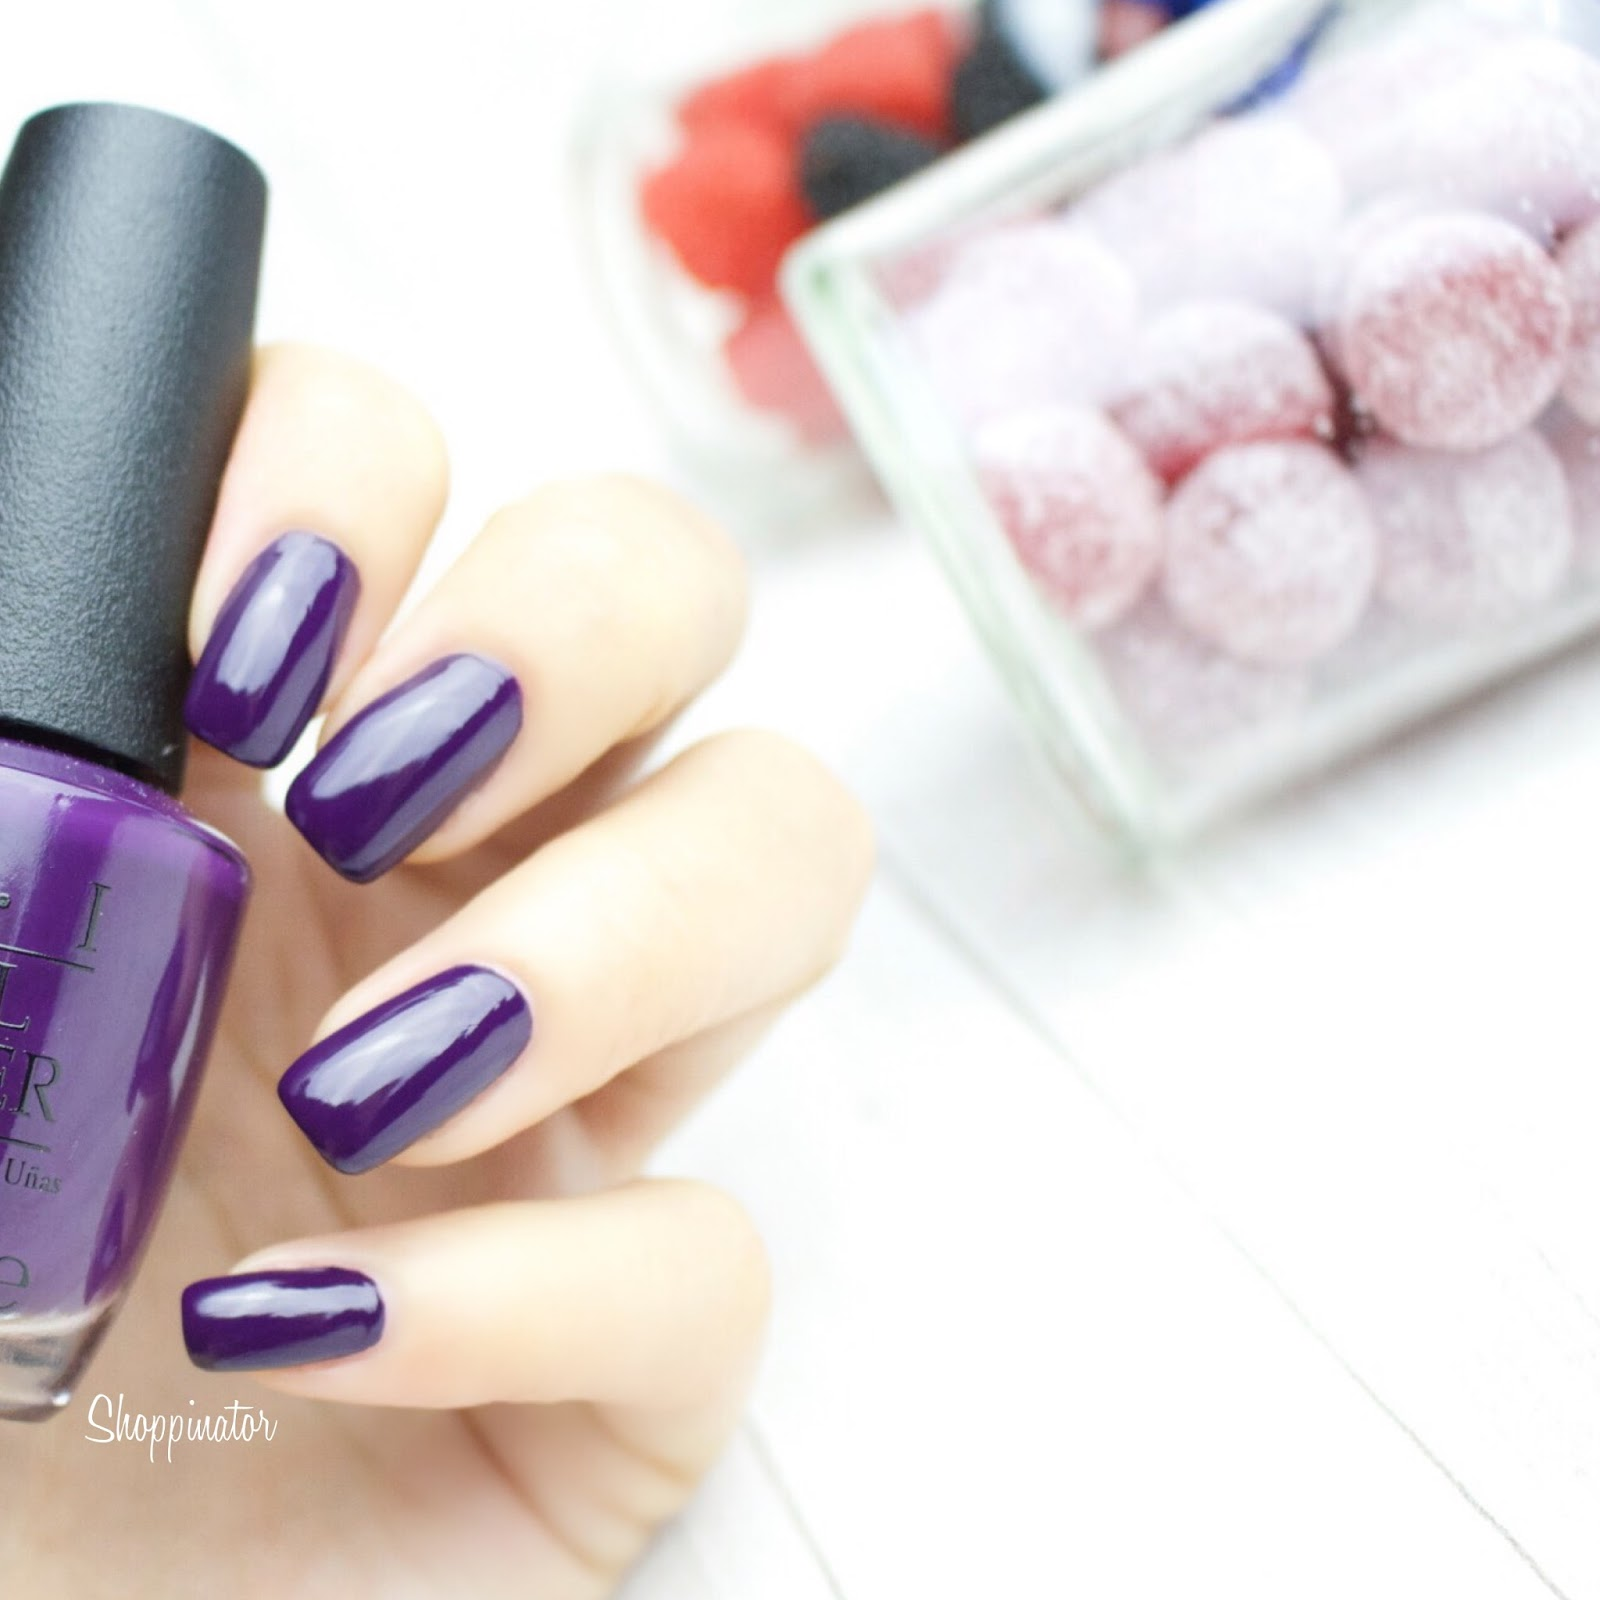 Opi-Coca-Cola-100-Jahre-LE-limitiert-Nagellack-Nailpolish-Coke-Shoppinator-Icons-of-Happiness-Visions-of-Georgia-Green-turn-on-the-haute-light-Grape-Affair-Sorry,I'm-fizzy-today-Coca-Cola-Red-Lila-Rot-Silber-Metallic-Grün-Rosa-Pink-Korall-Polish-Swatch-Swatches-Review